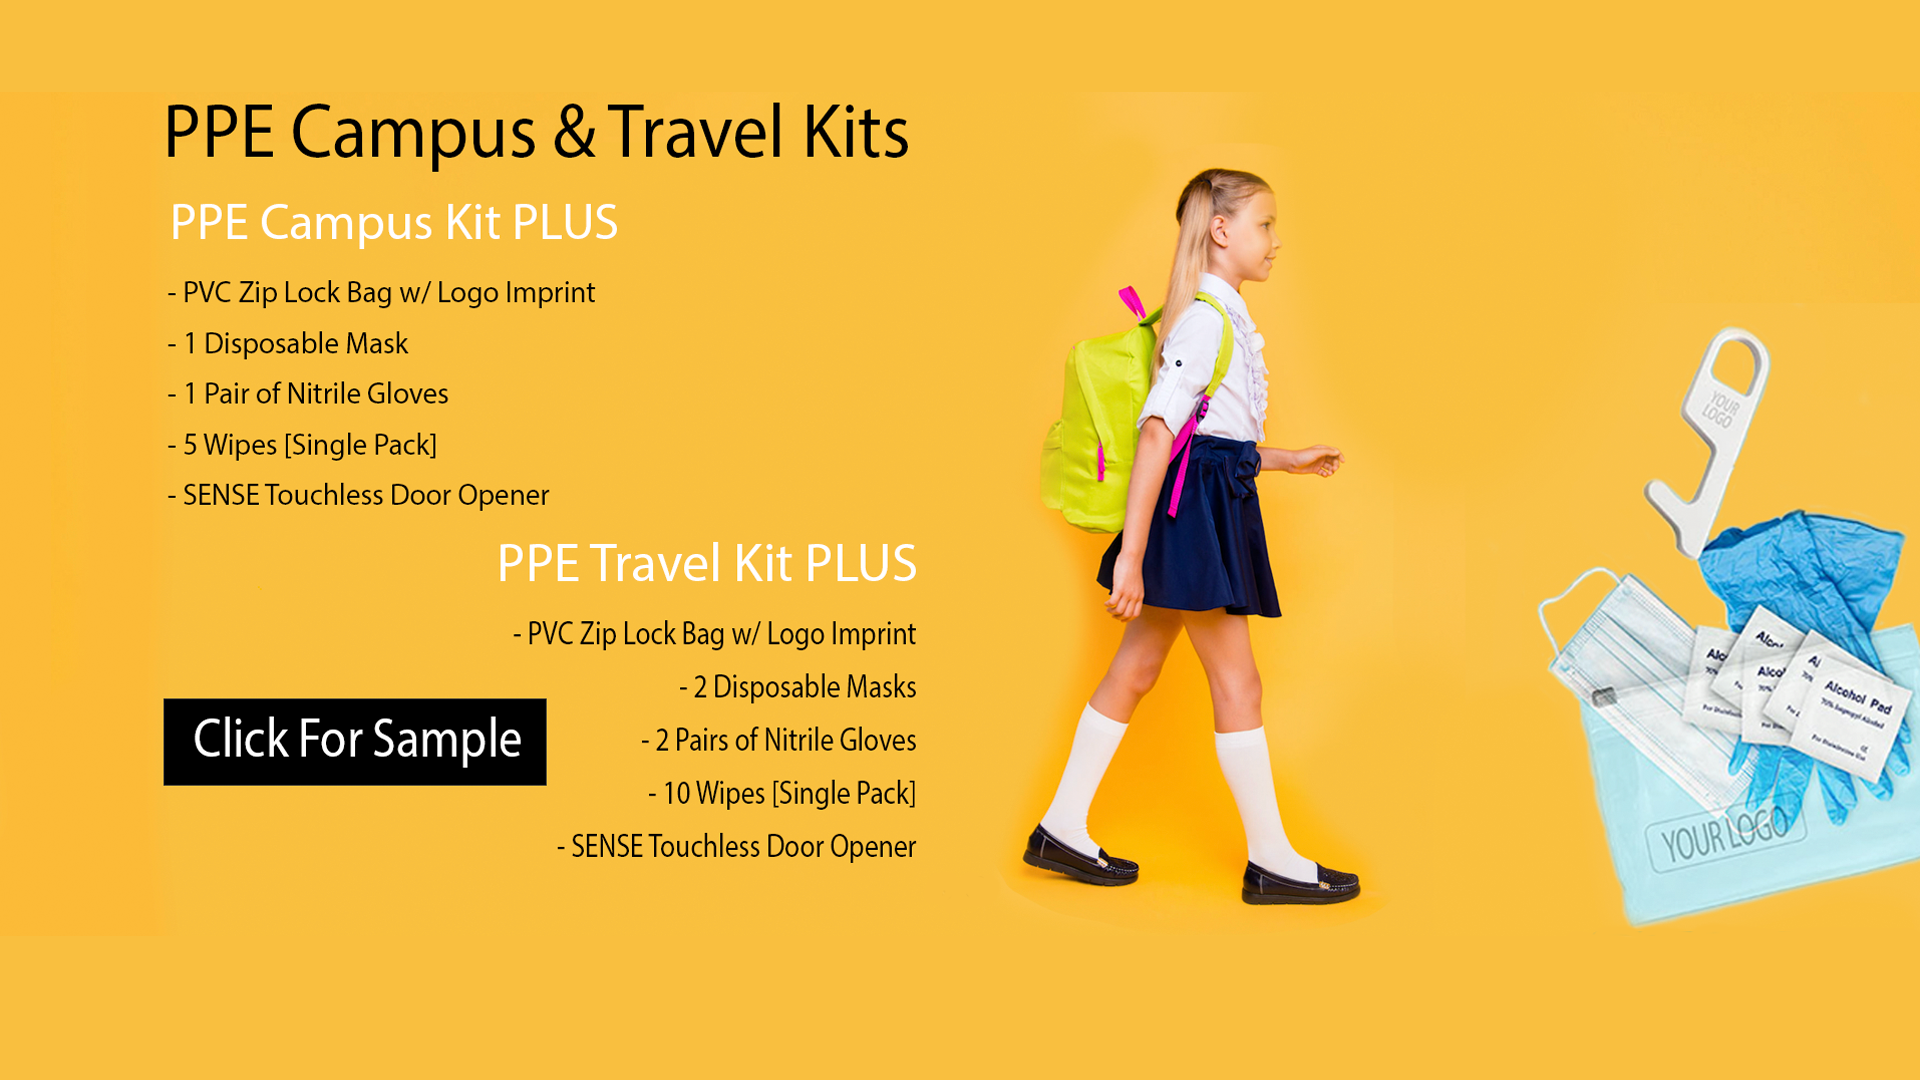 Travel and Campus kit for education, campus, and school activities. Frequent travelers need to use wipes for efficient germ killing.